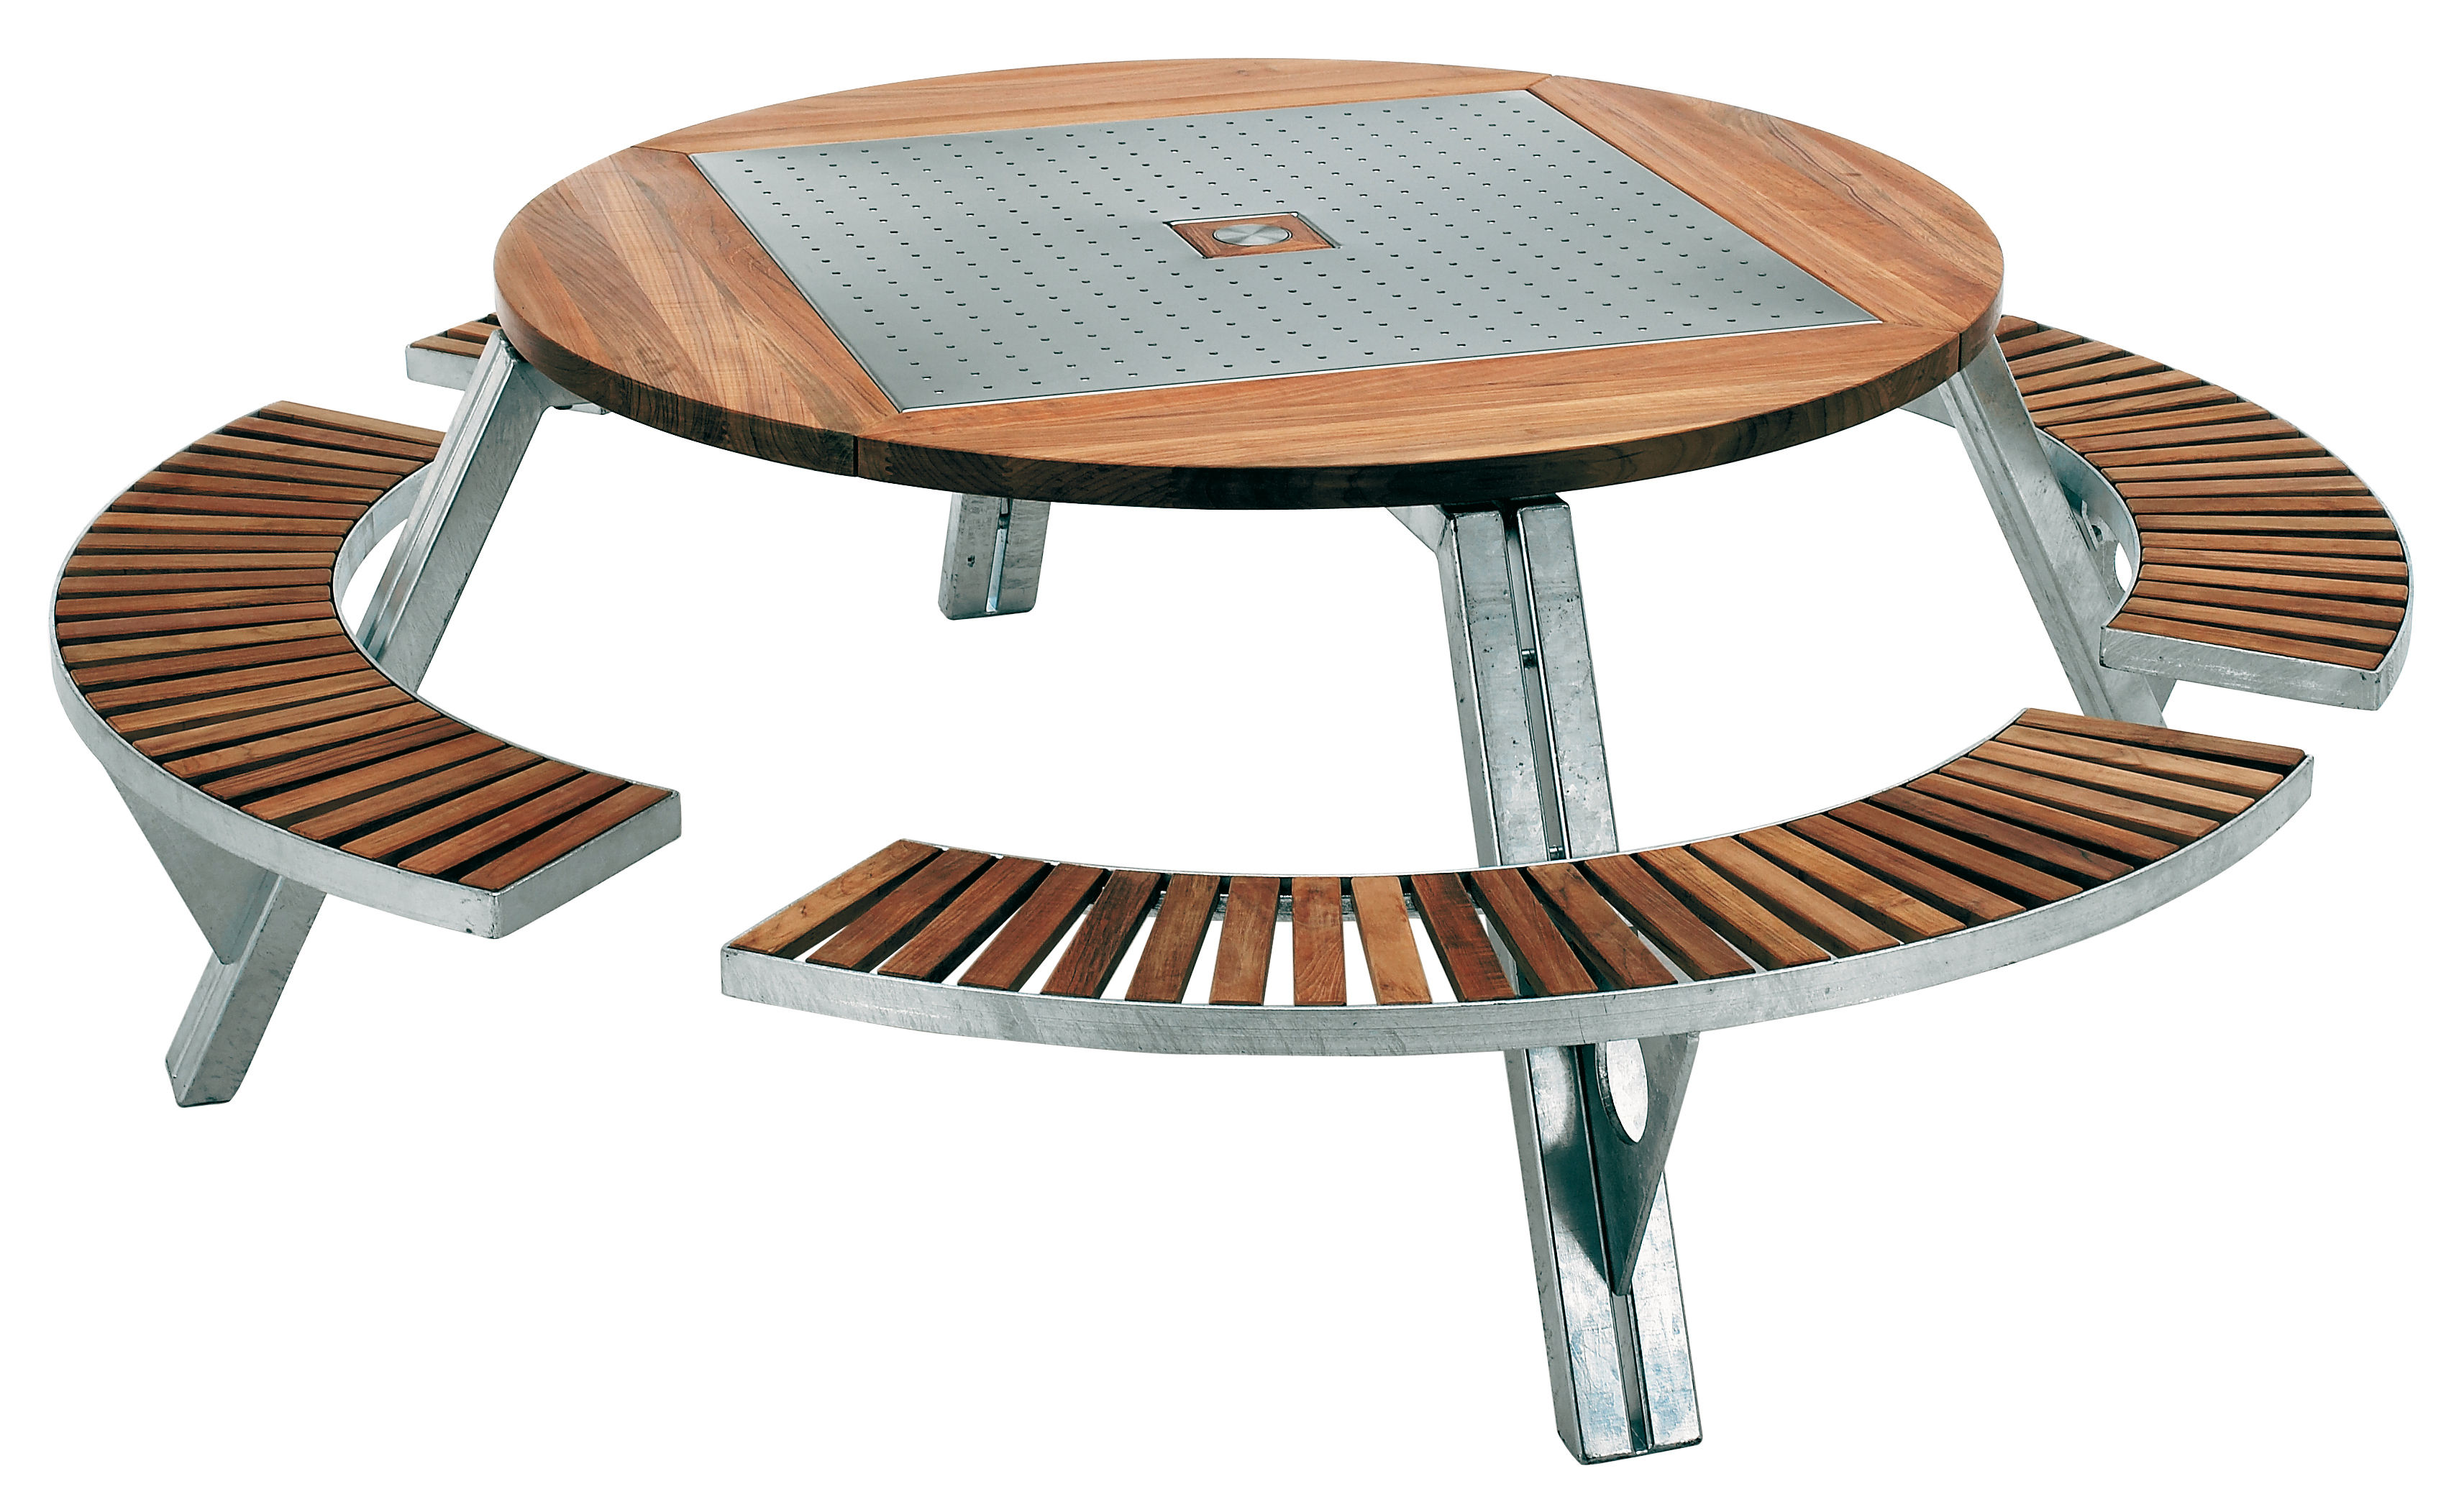 Gargantua garden table adjustable table and bench set for Table and bench set